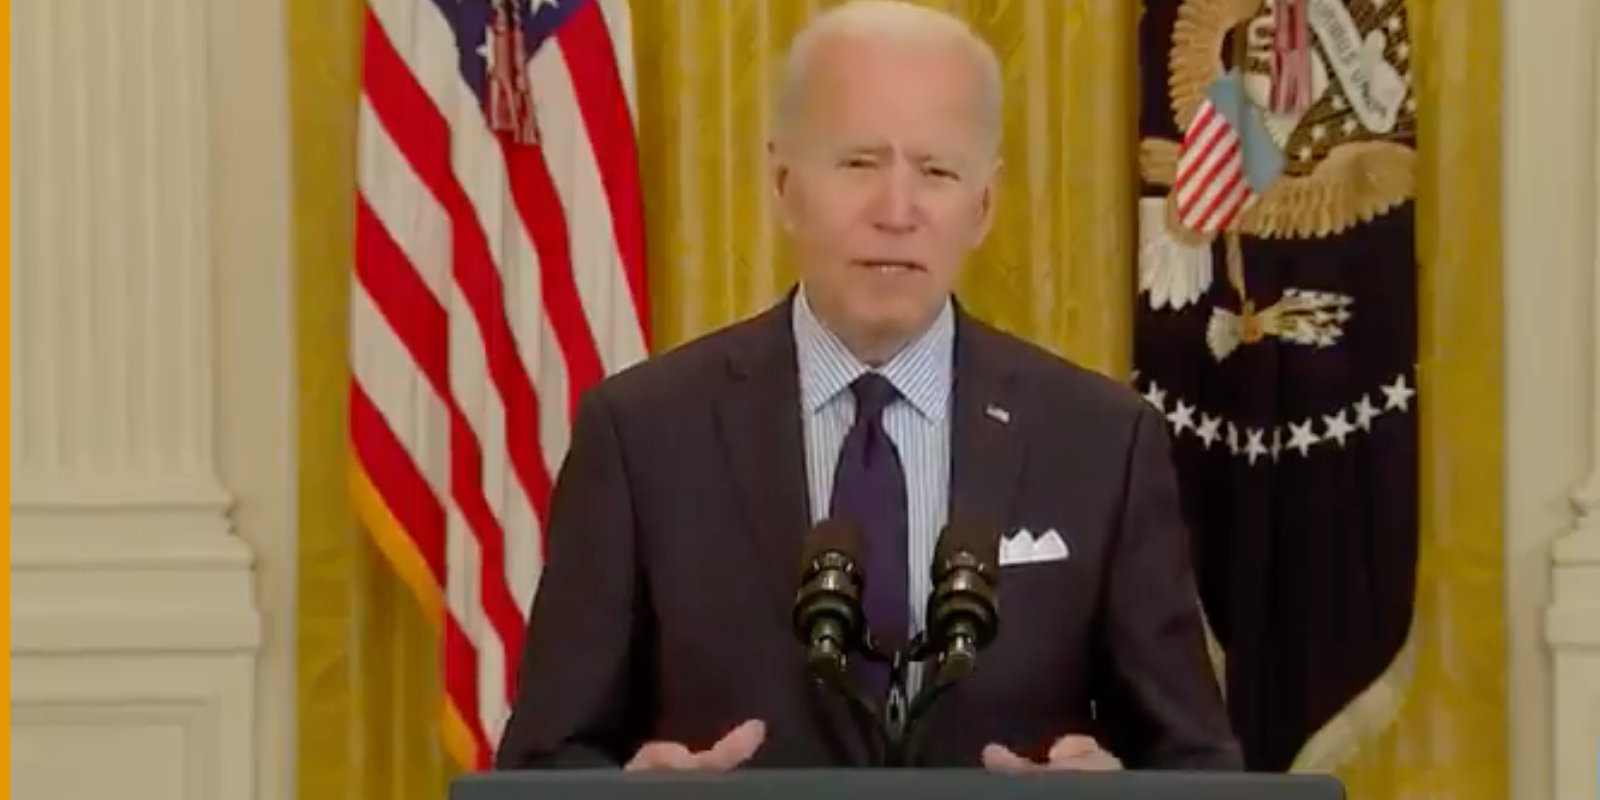 DAMAGE CONTROL: Biden tries to put horrific jobs numbers 'in perspective'